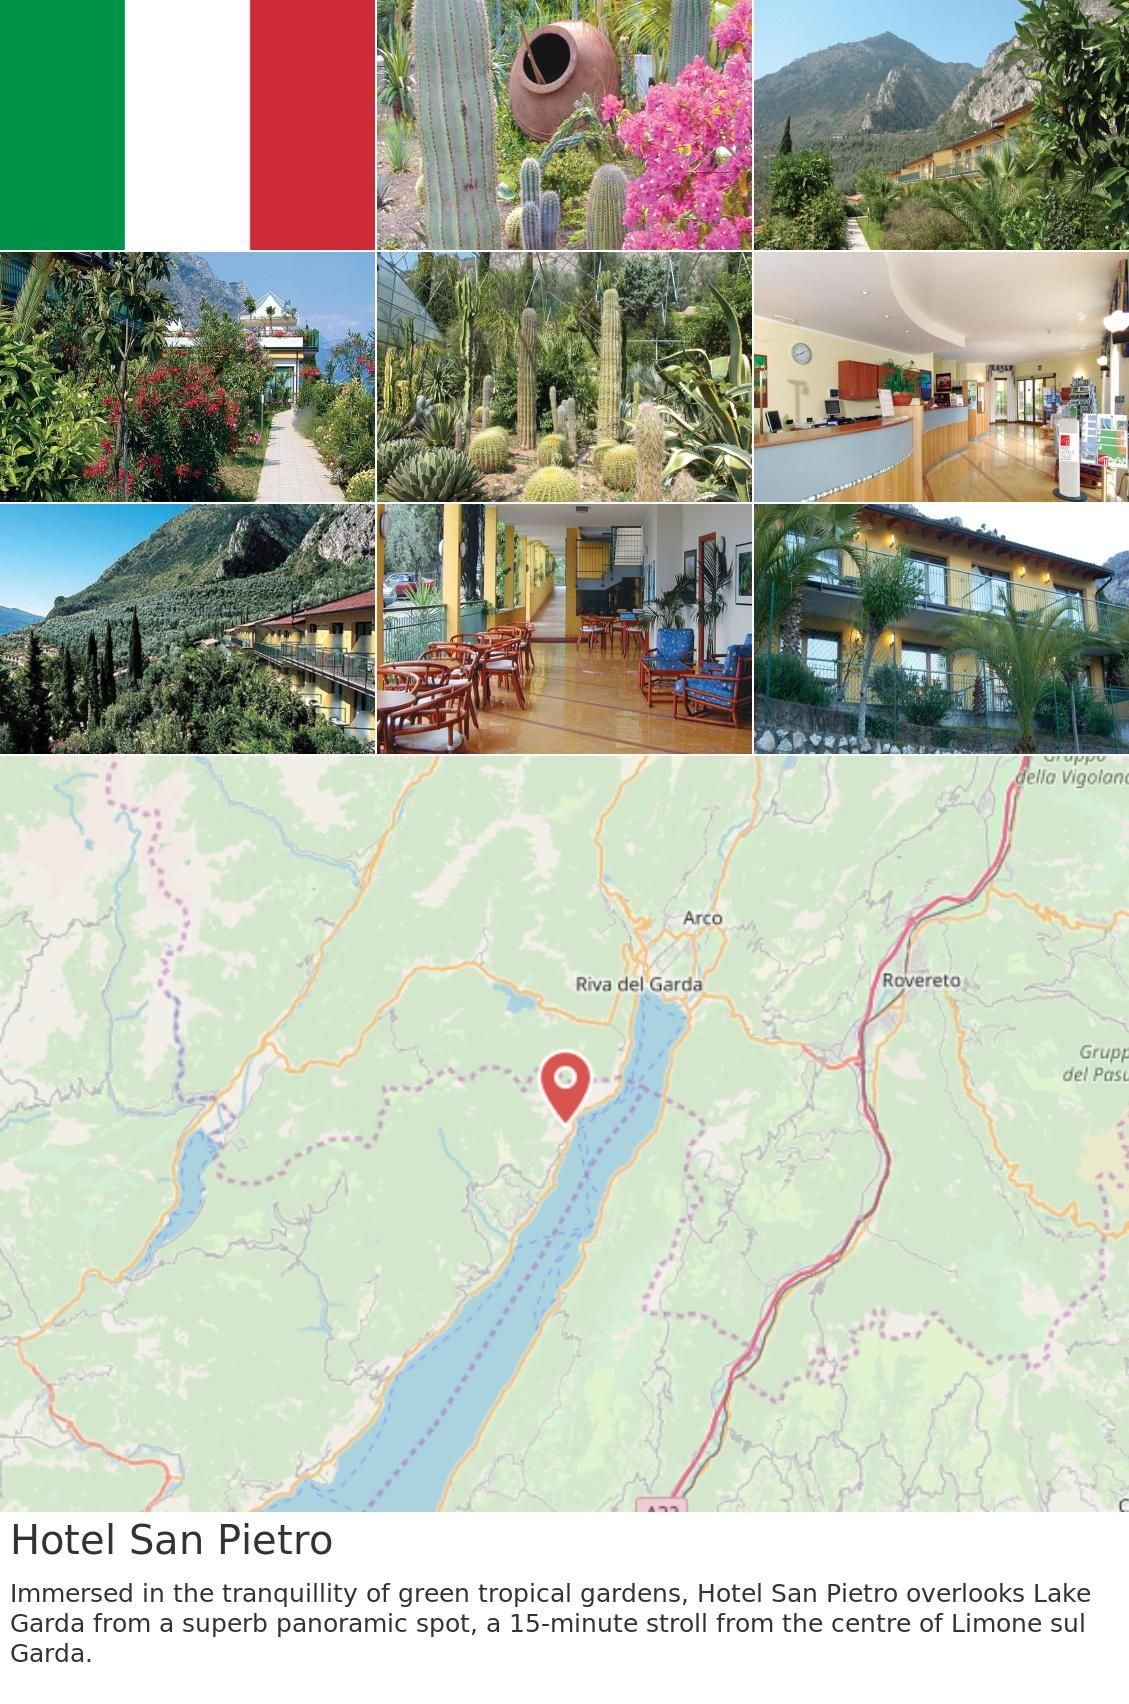 Europe Italy Limone Sul Garda Hotel San Pietro Immersed In The Tranquillity Of Green Tropical Gardens Ho Summer Swimming Pool Tropical Garden Outdoor Pool